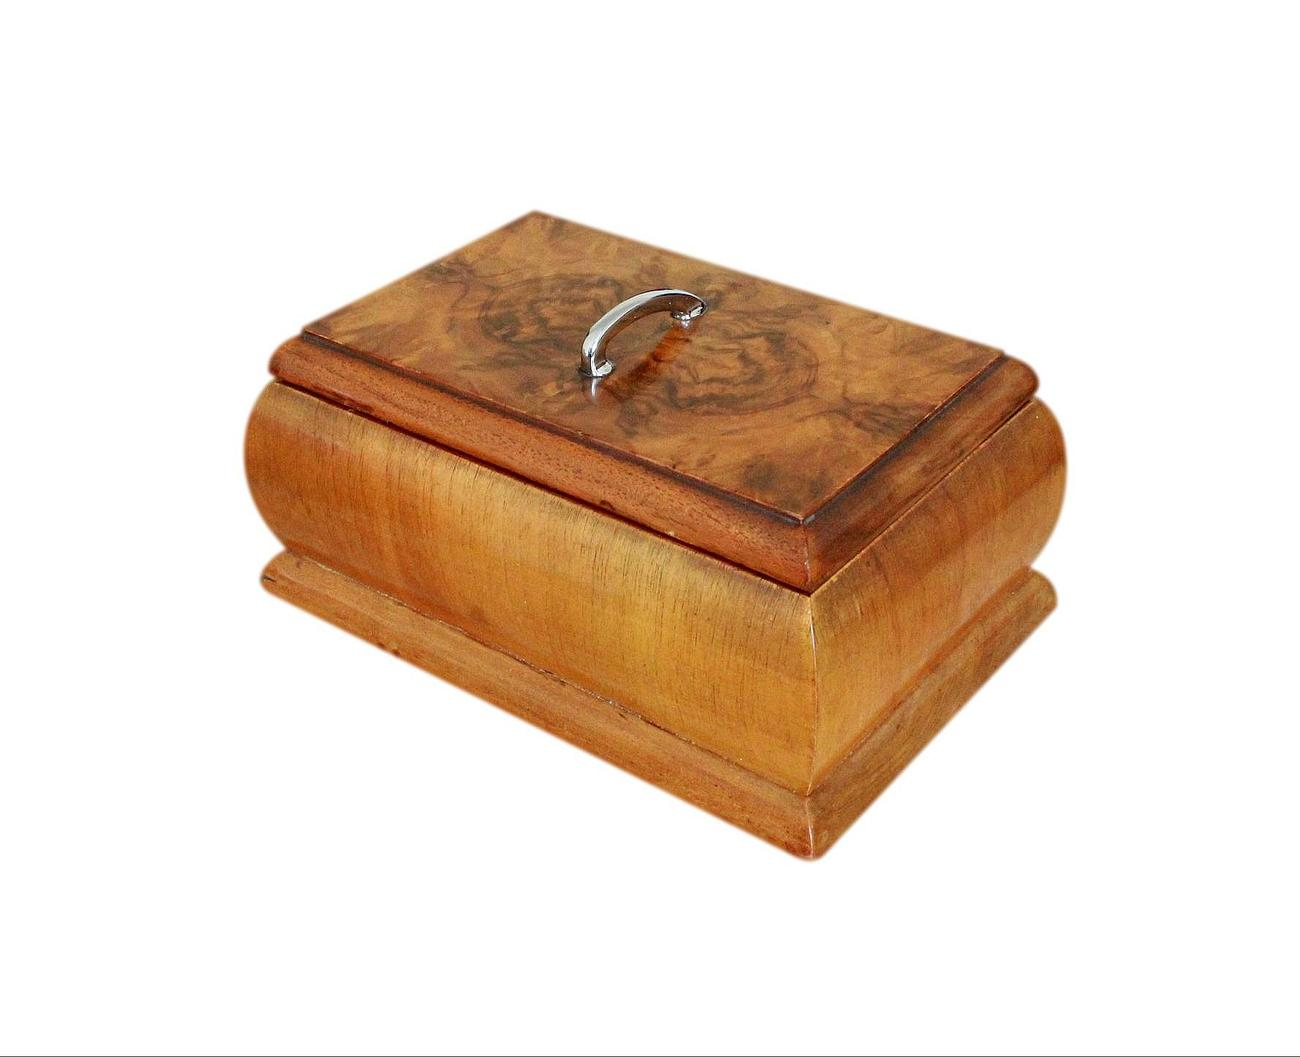 Quadrant_Cut_Vintage_Walnut_Jewellery_Box.jpg